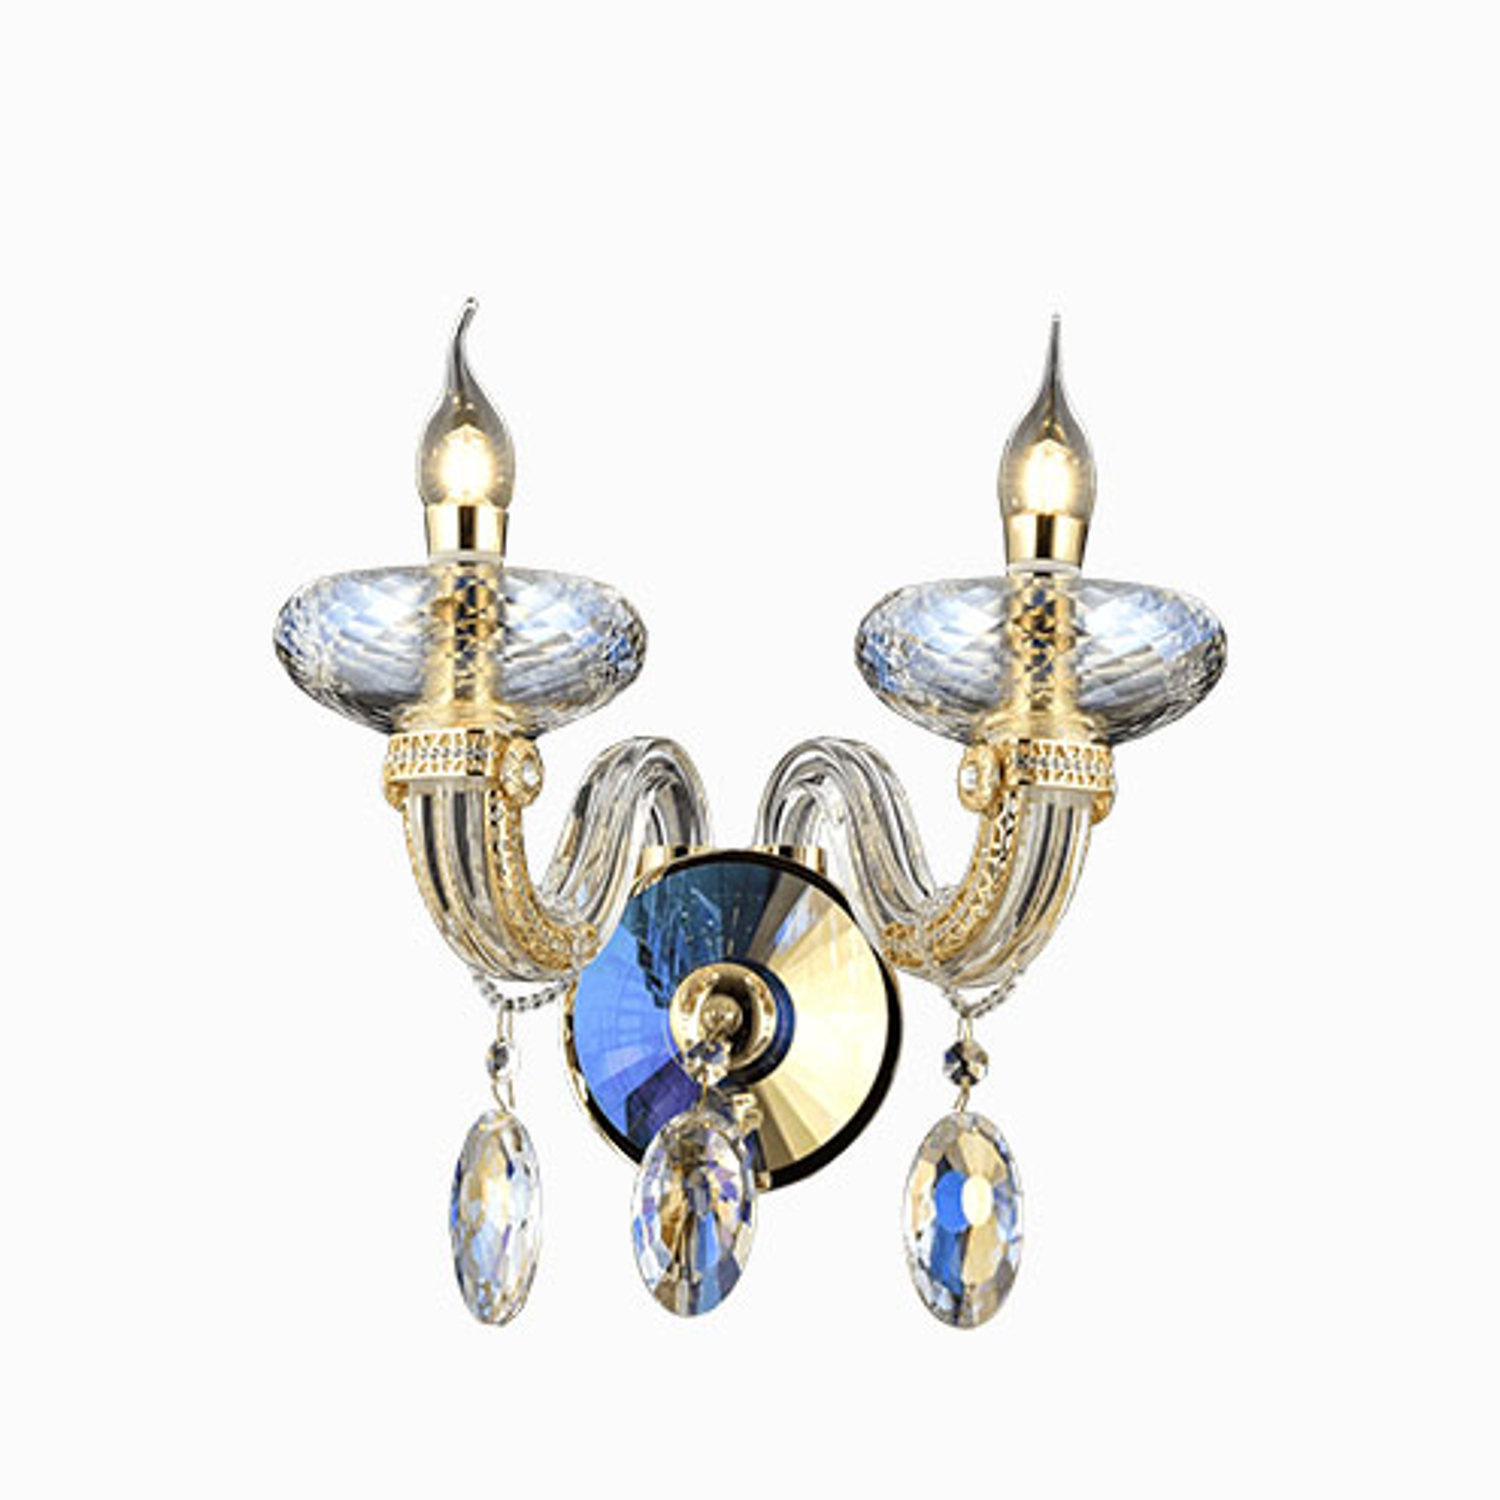 Picture for category SCONCE